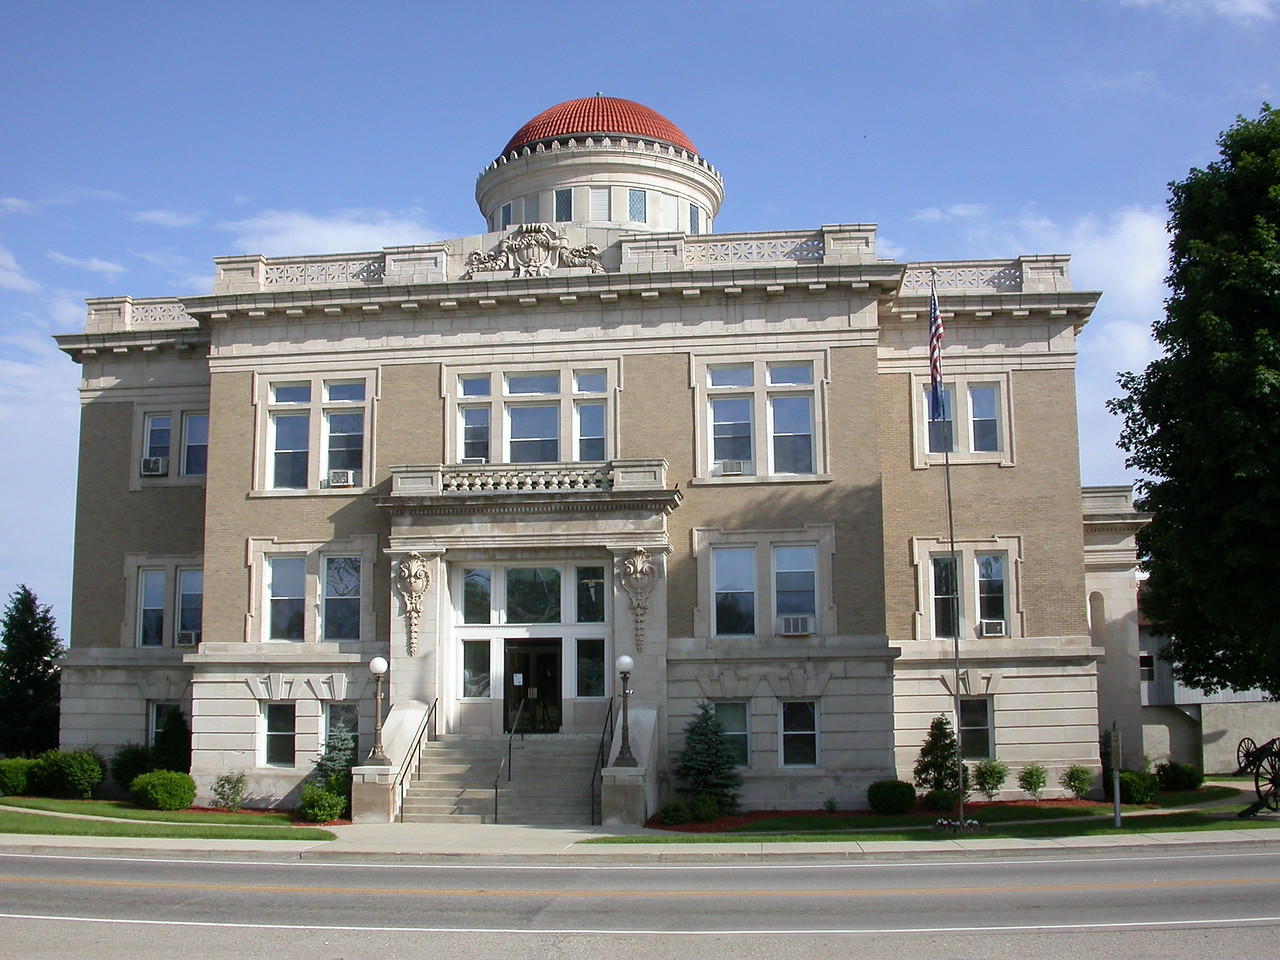 Warren County Courthouse, Williamsport, Indiana, May 2004.